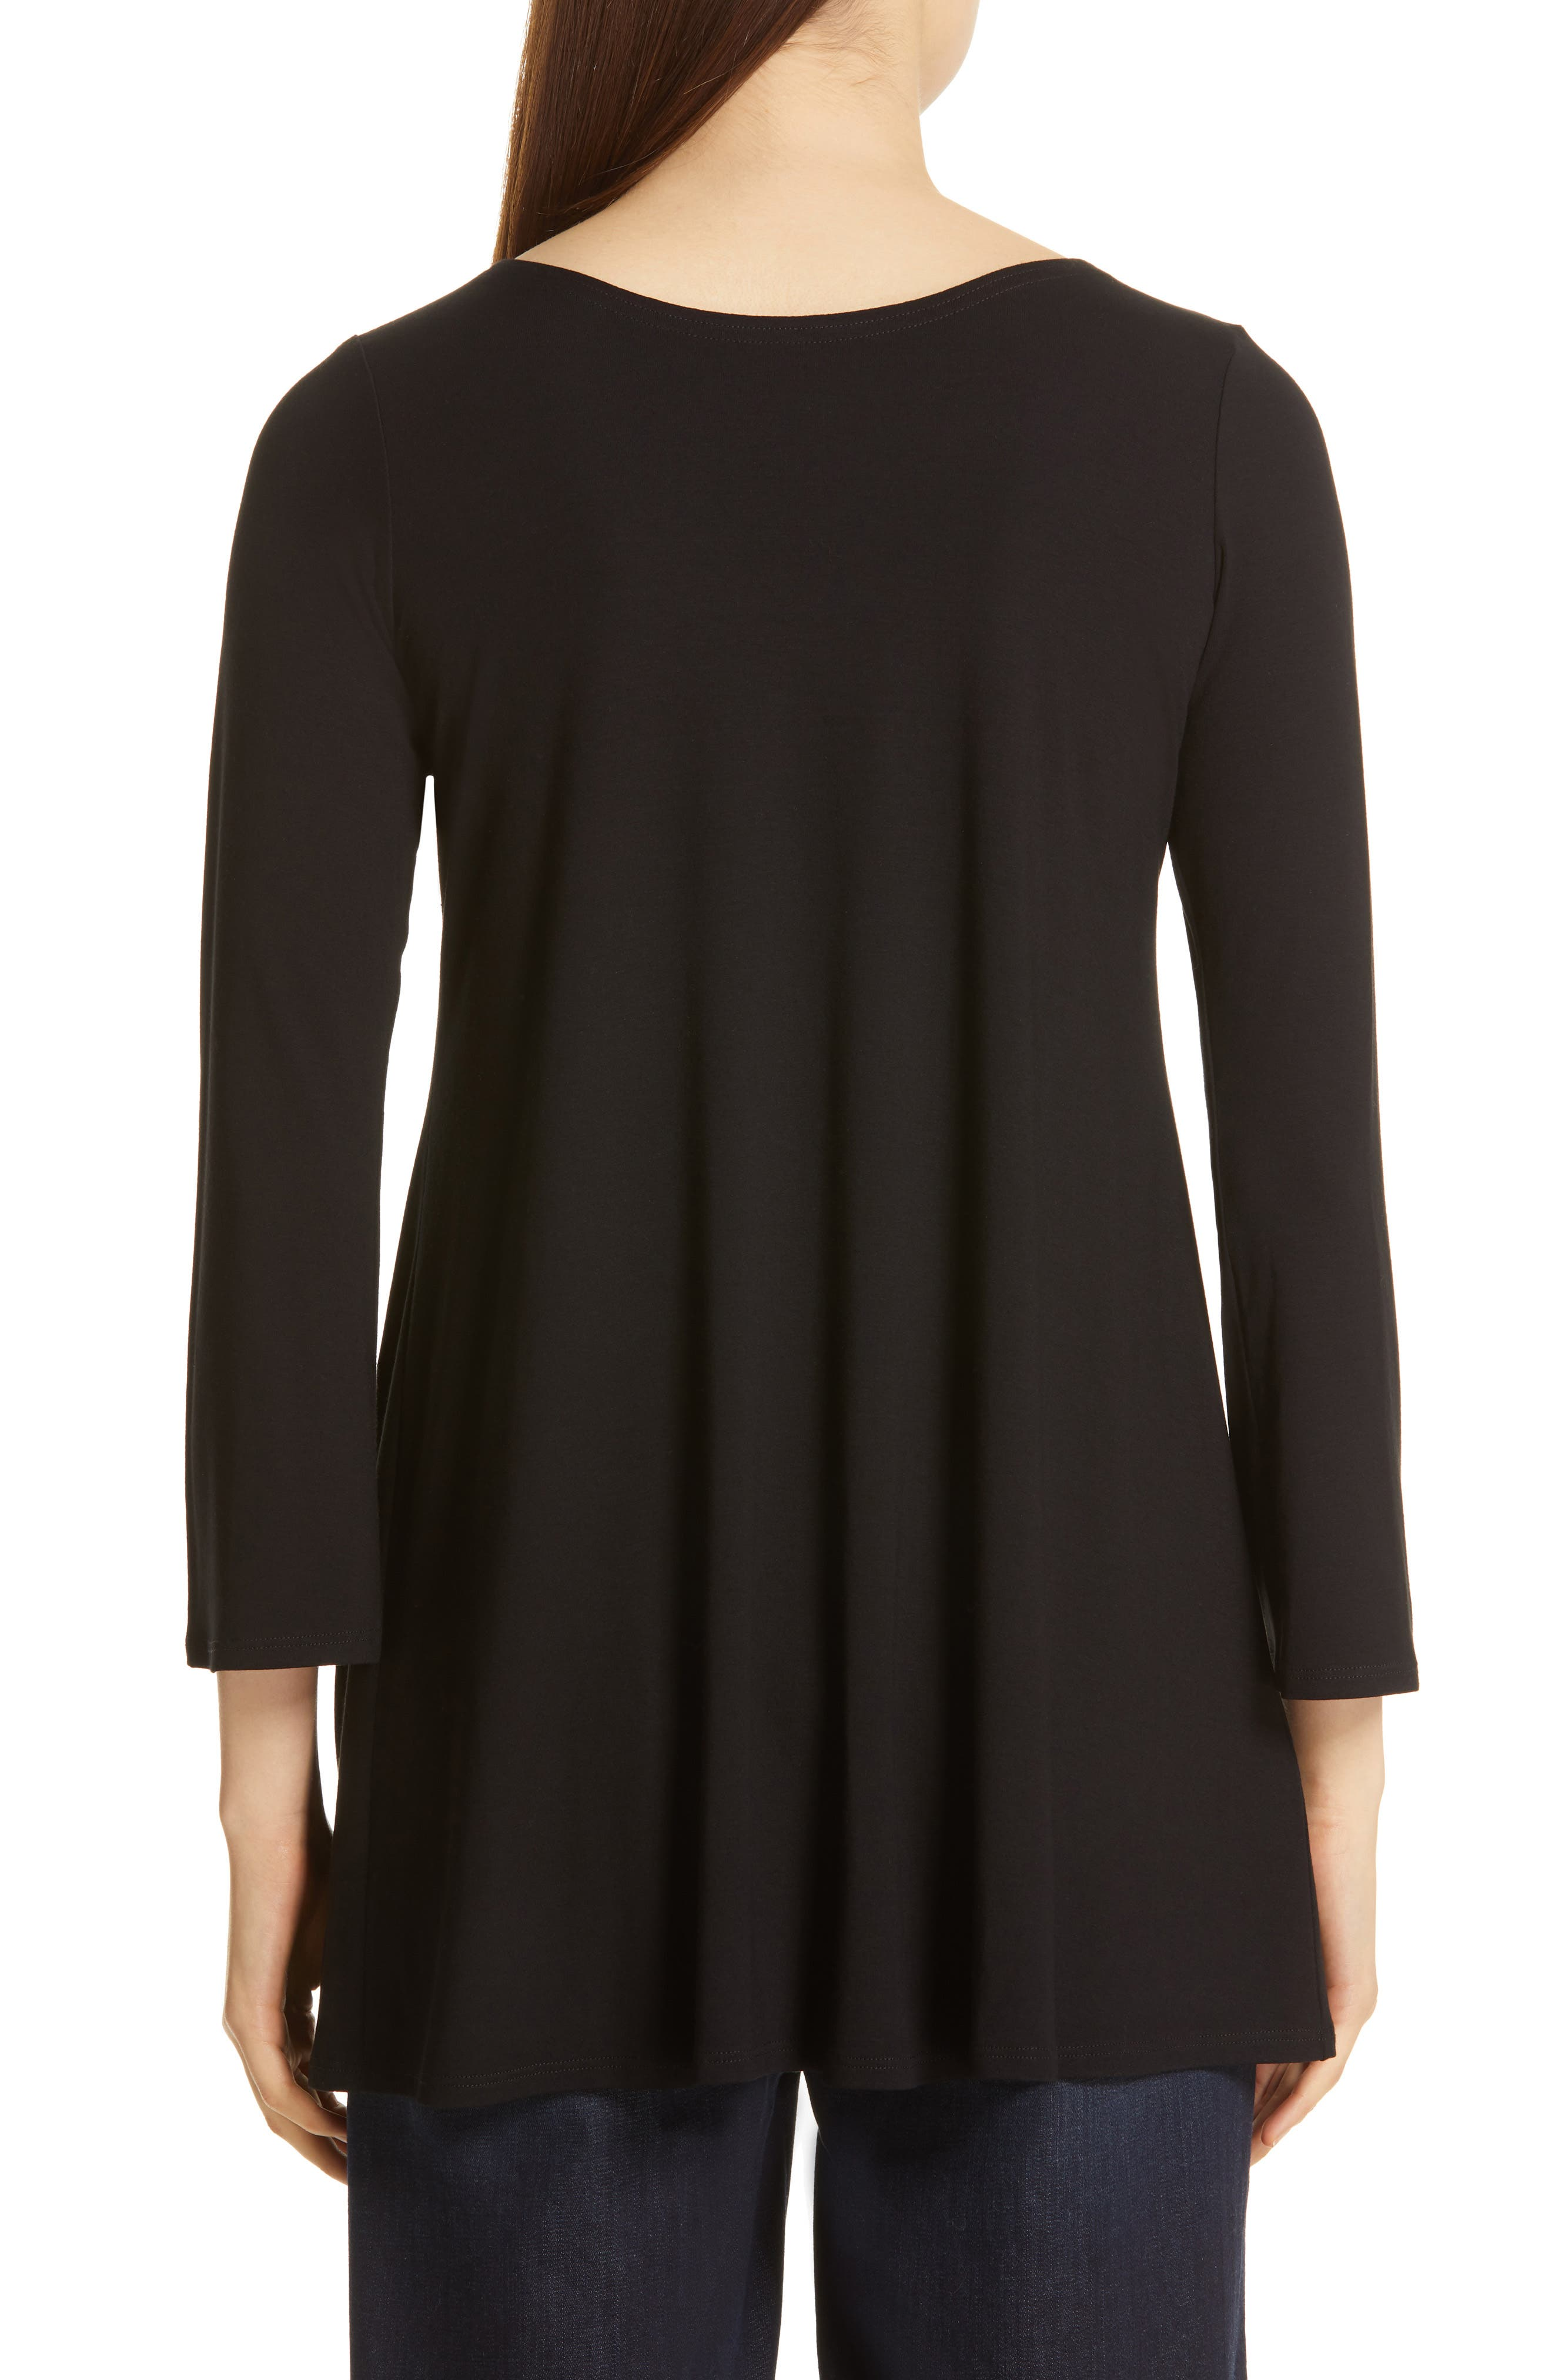 EILEEN FISHER, Jewel Neck Tunic Top, Alternate thumbnail 2, color, 001